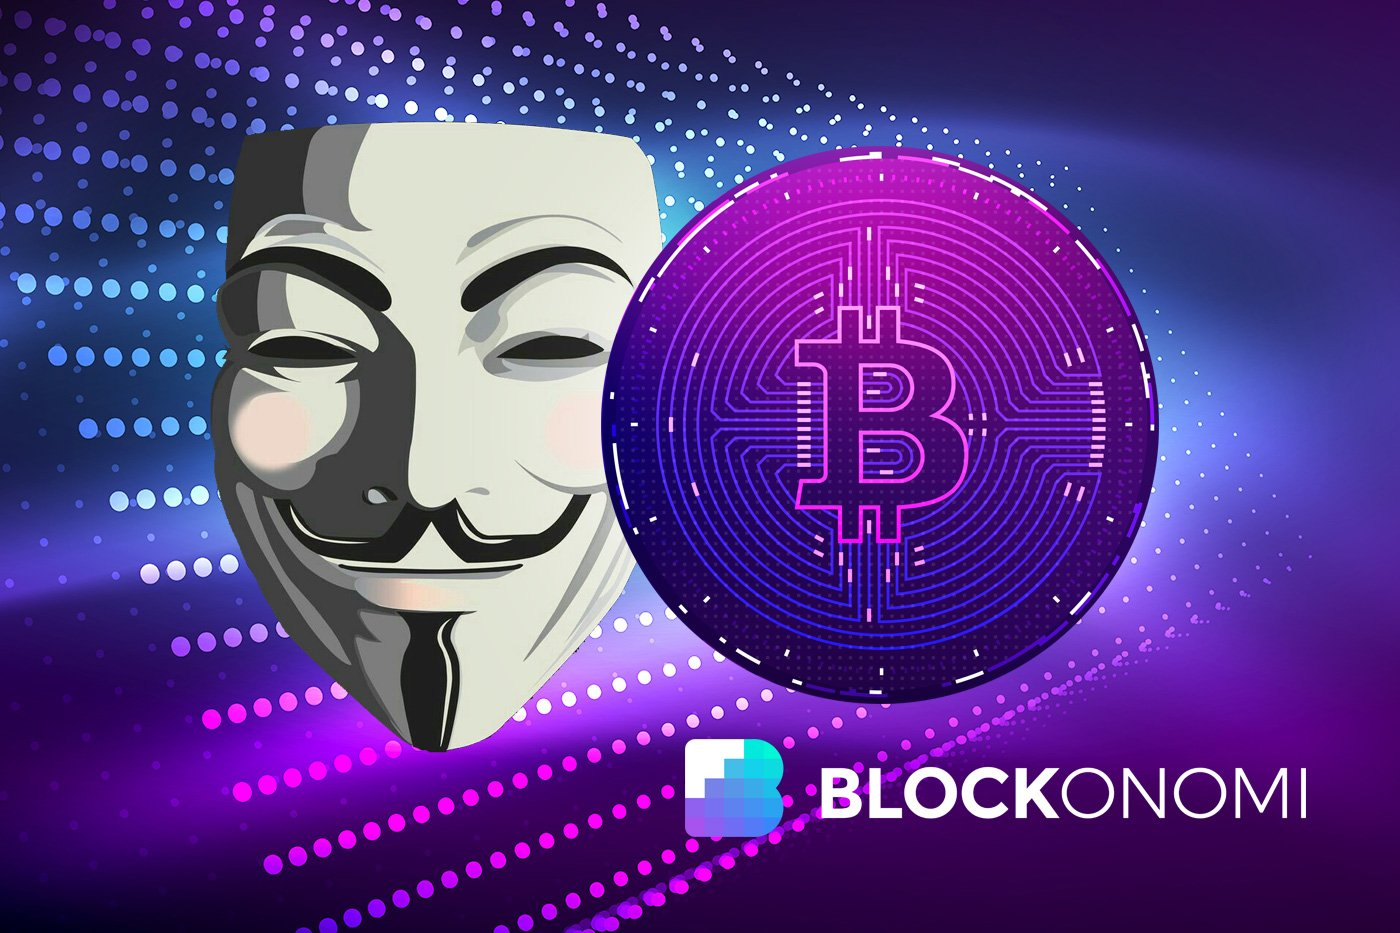 How to Buy Bitcoin Anonymously Without I D | BitcoInternet